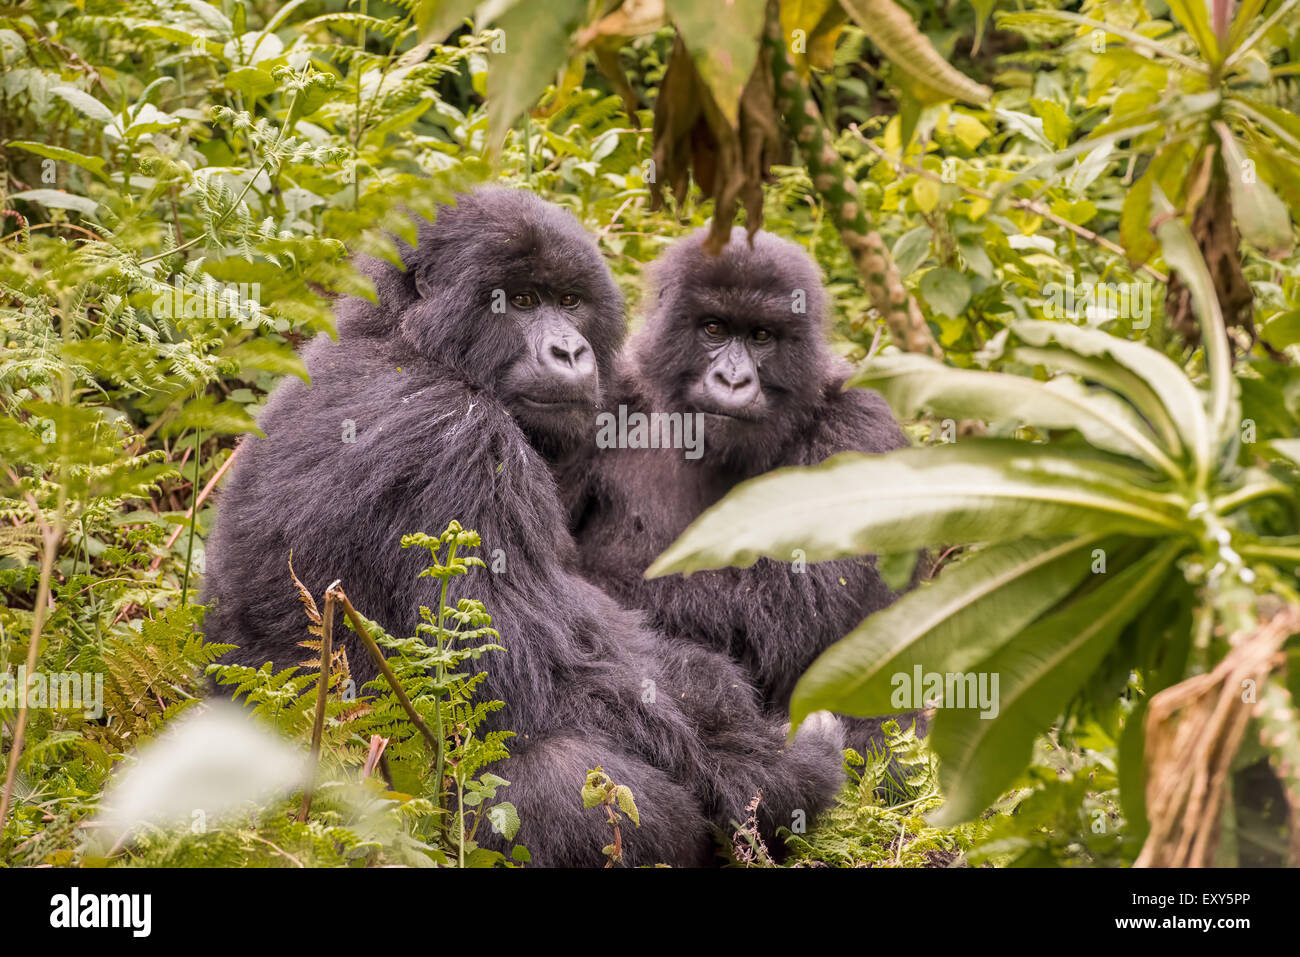 Two gorillas sitting in a clearing in the jungle, Rwanda. - Stock Image